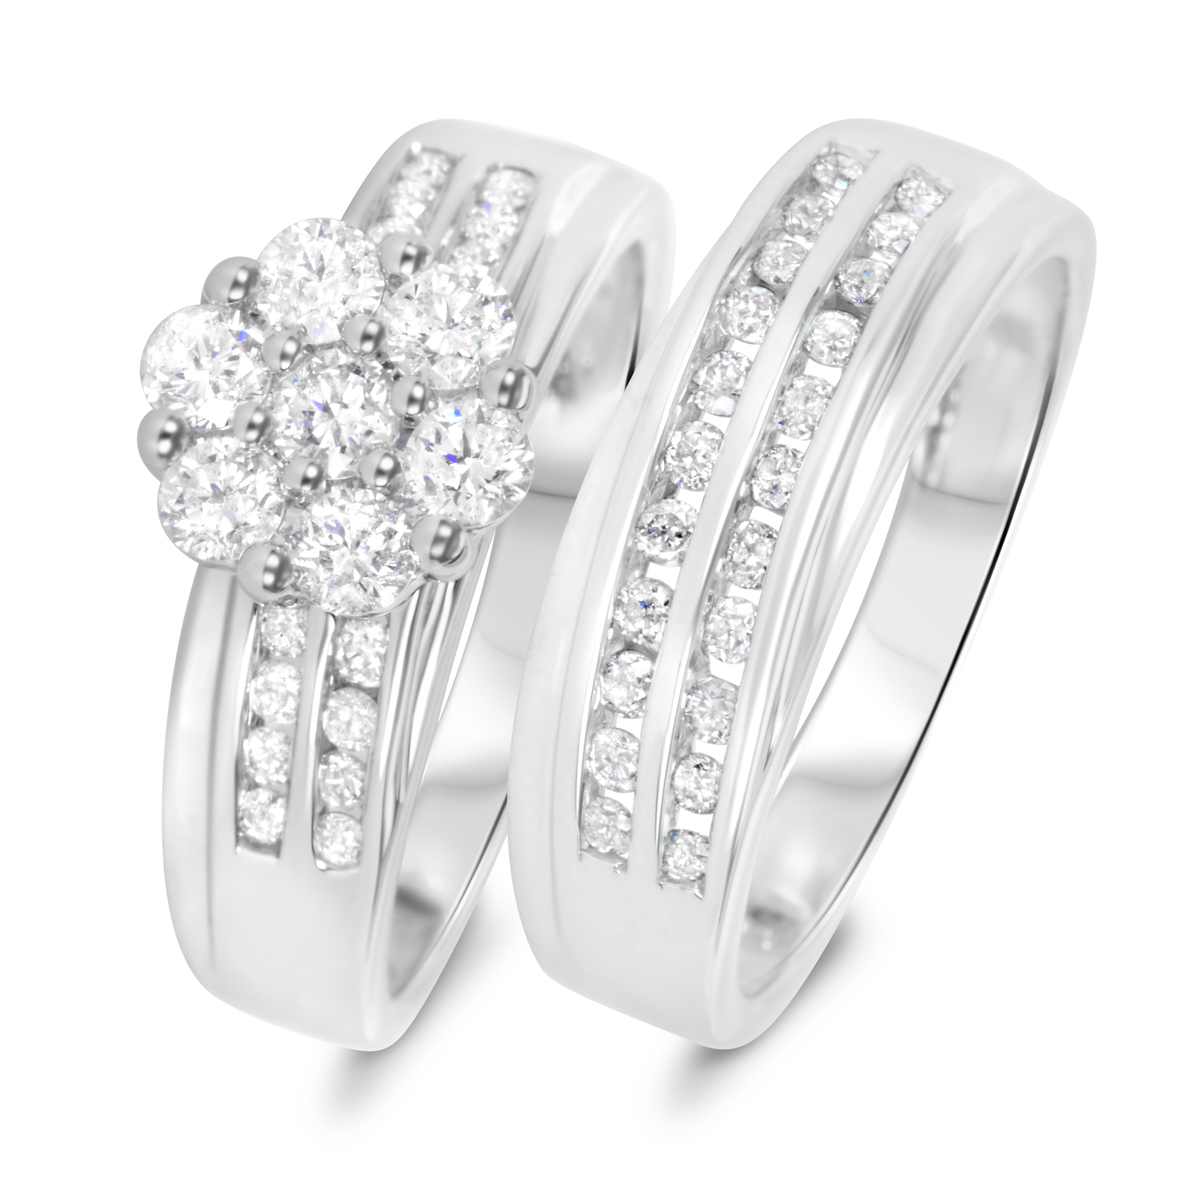 1 1/6 CT. T.W. Diamond Ladies' Bridal Wedding Ring Set 10K White Gold